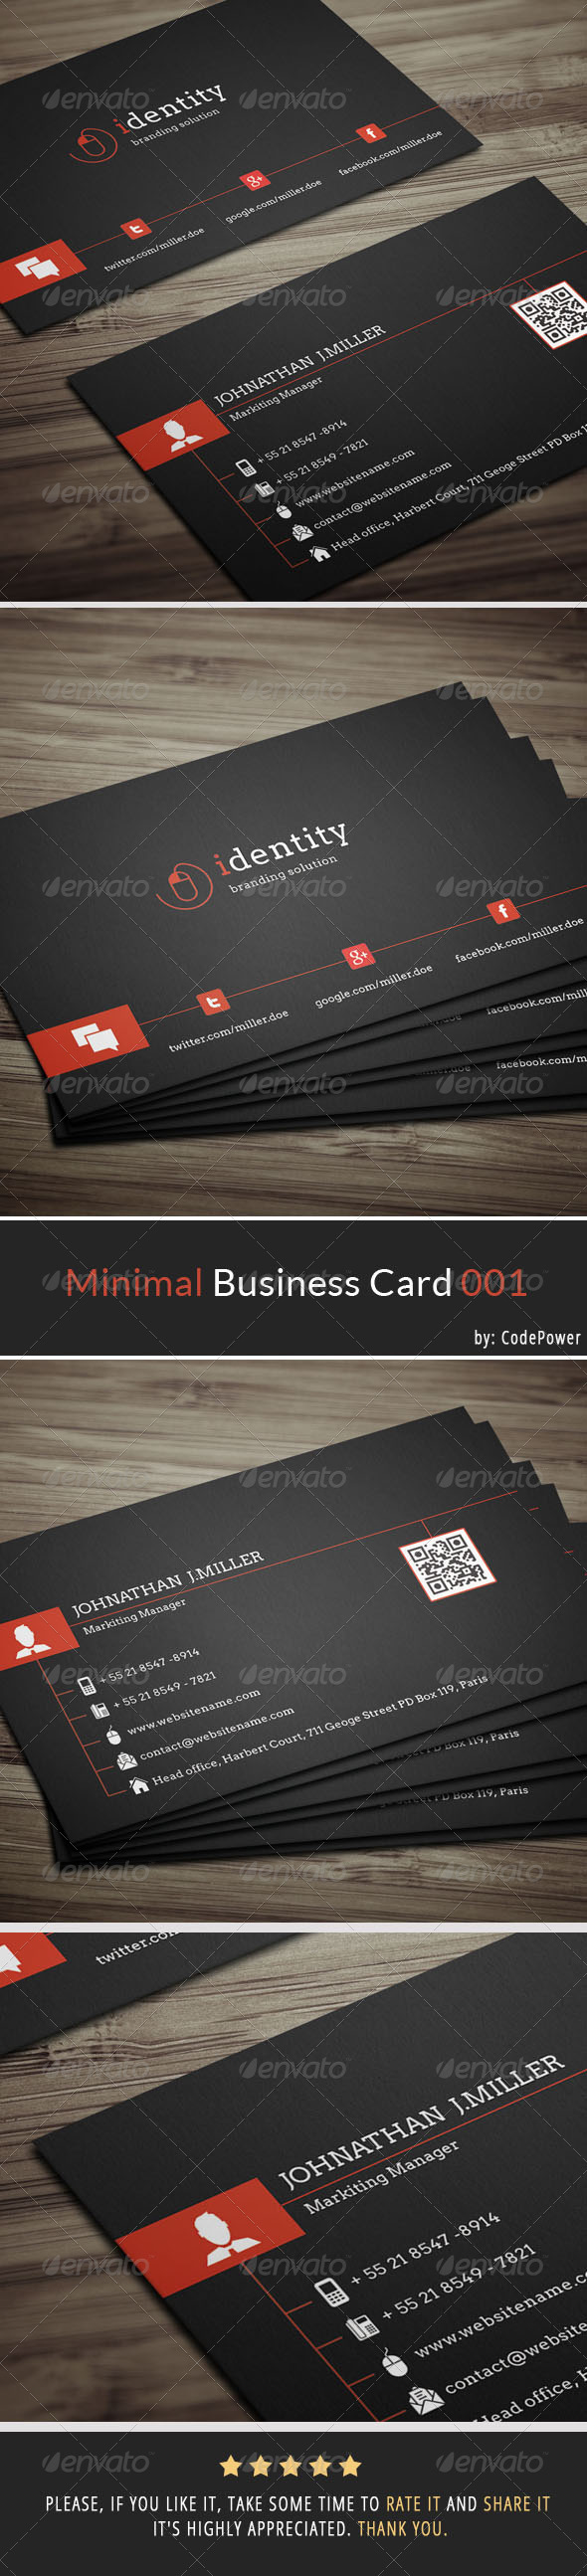 Minimal Business Card 001 - Corporate Business Cards